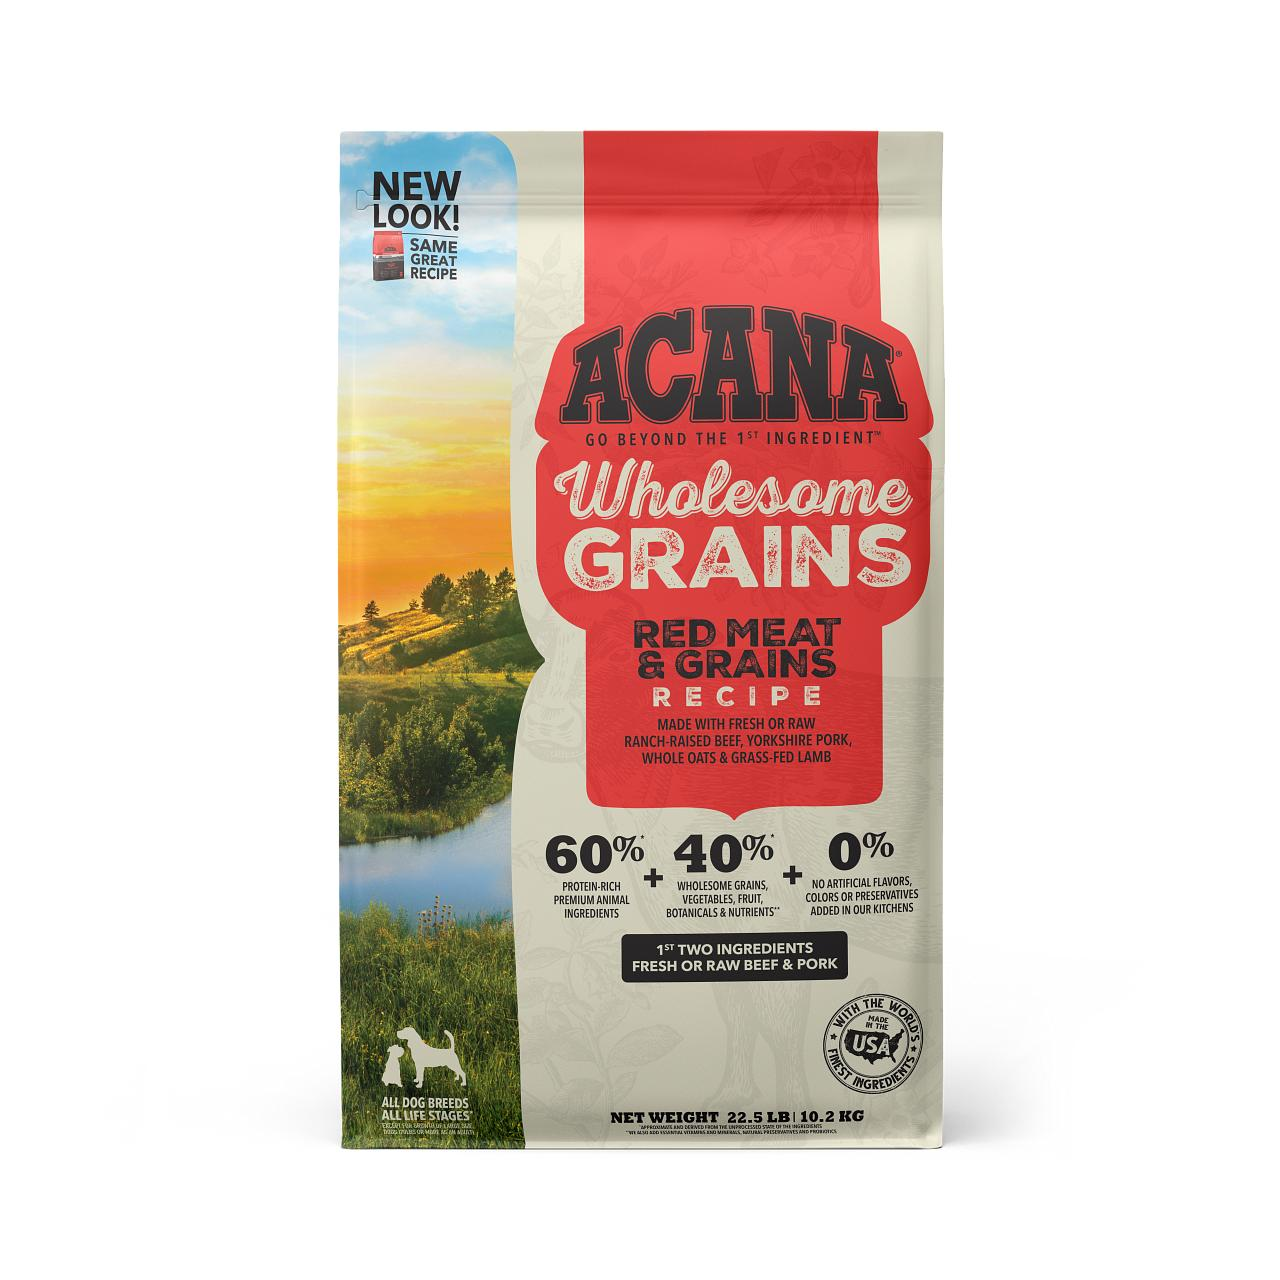 ACANA Wholesome Grains Red Meat & Grains Dry Dog Food, 22.5-lb